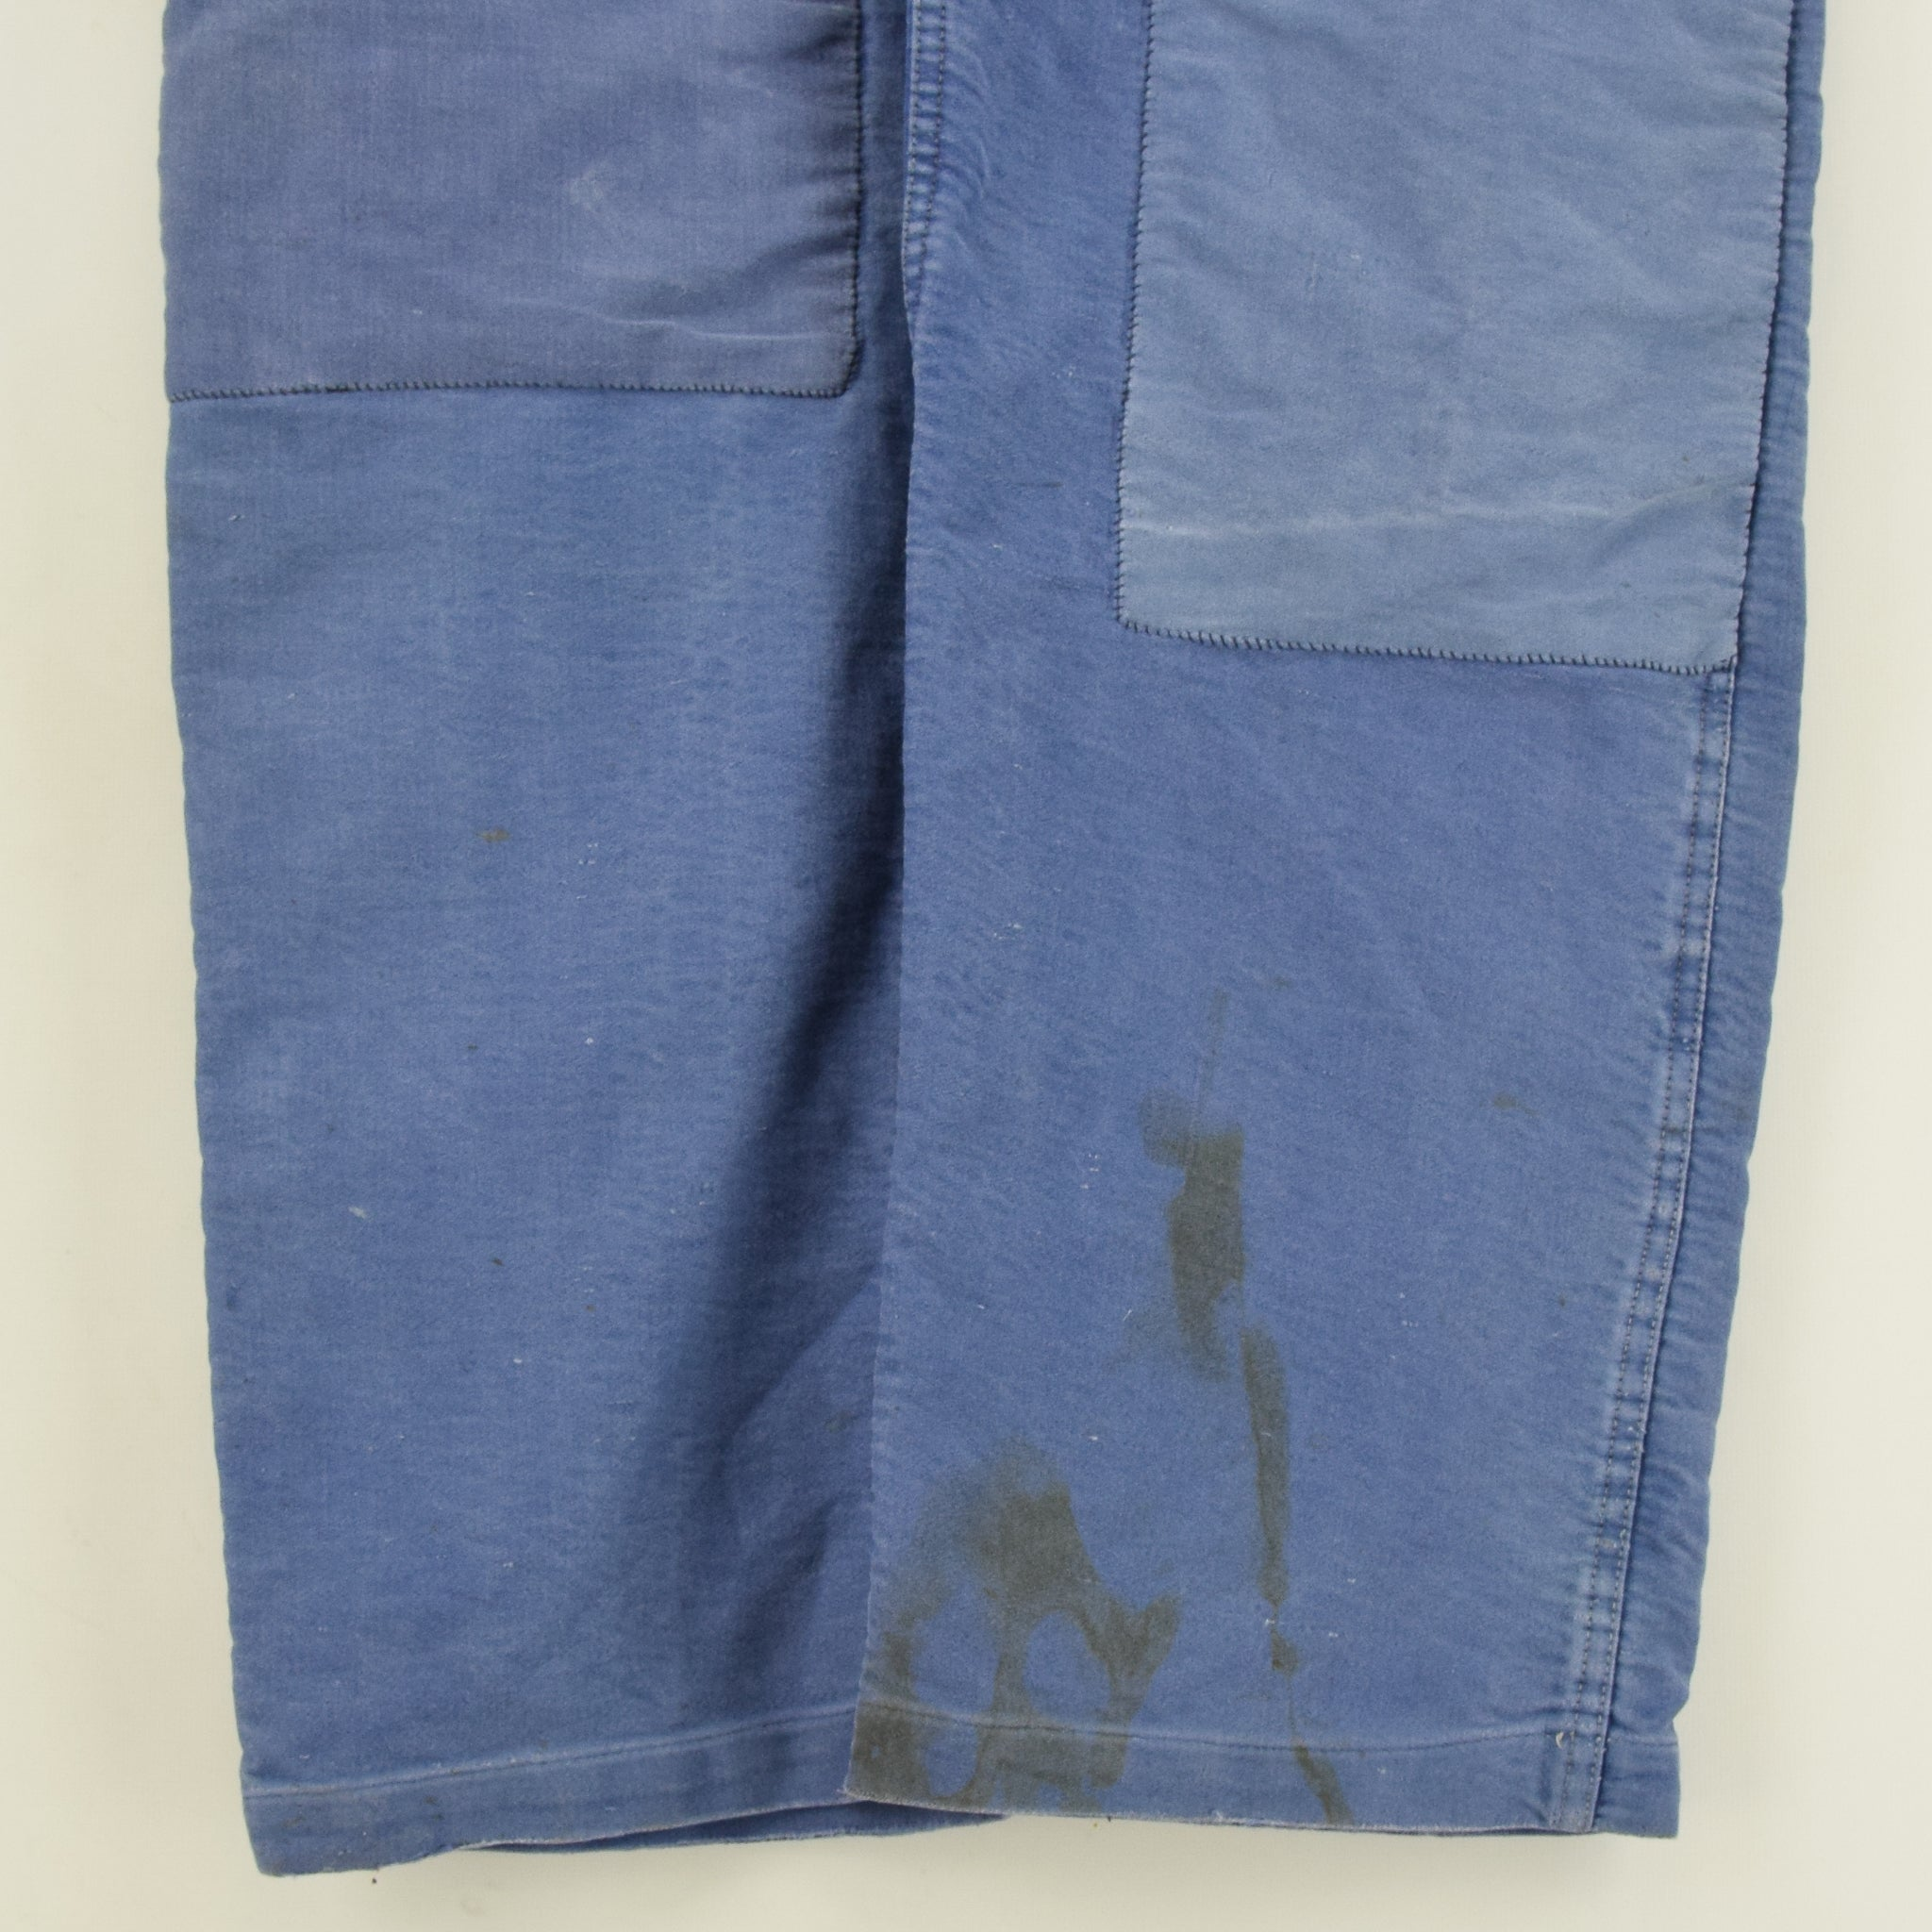 Vintage Distressed Blue French Moleskin Workwear Dungarees Trousers S / M front legs